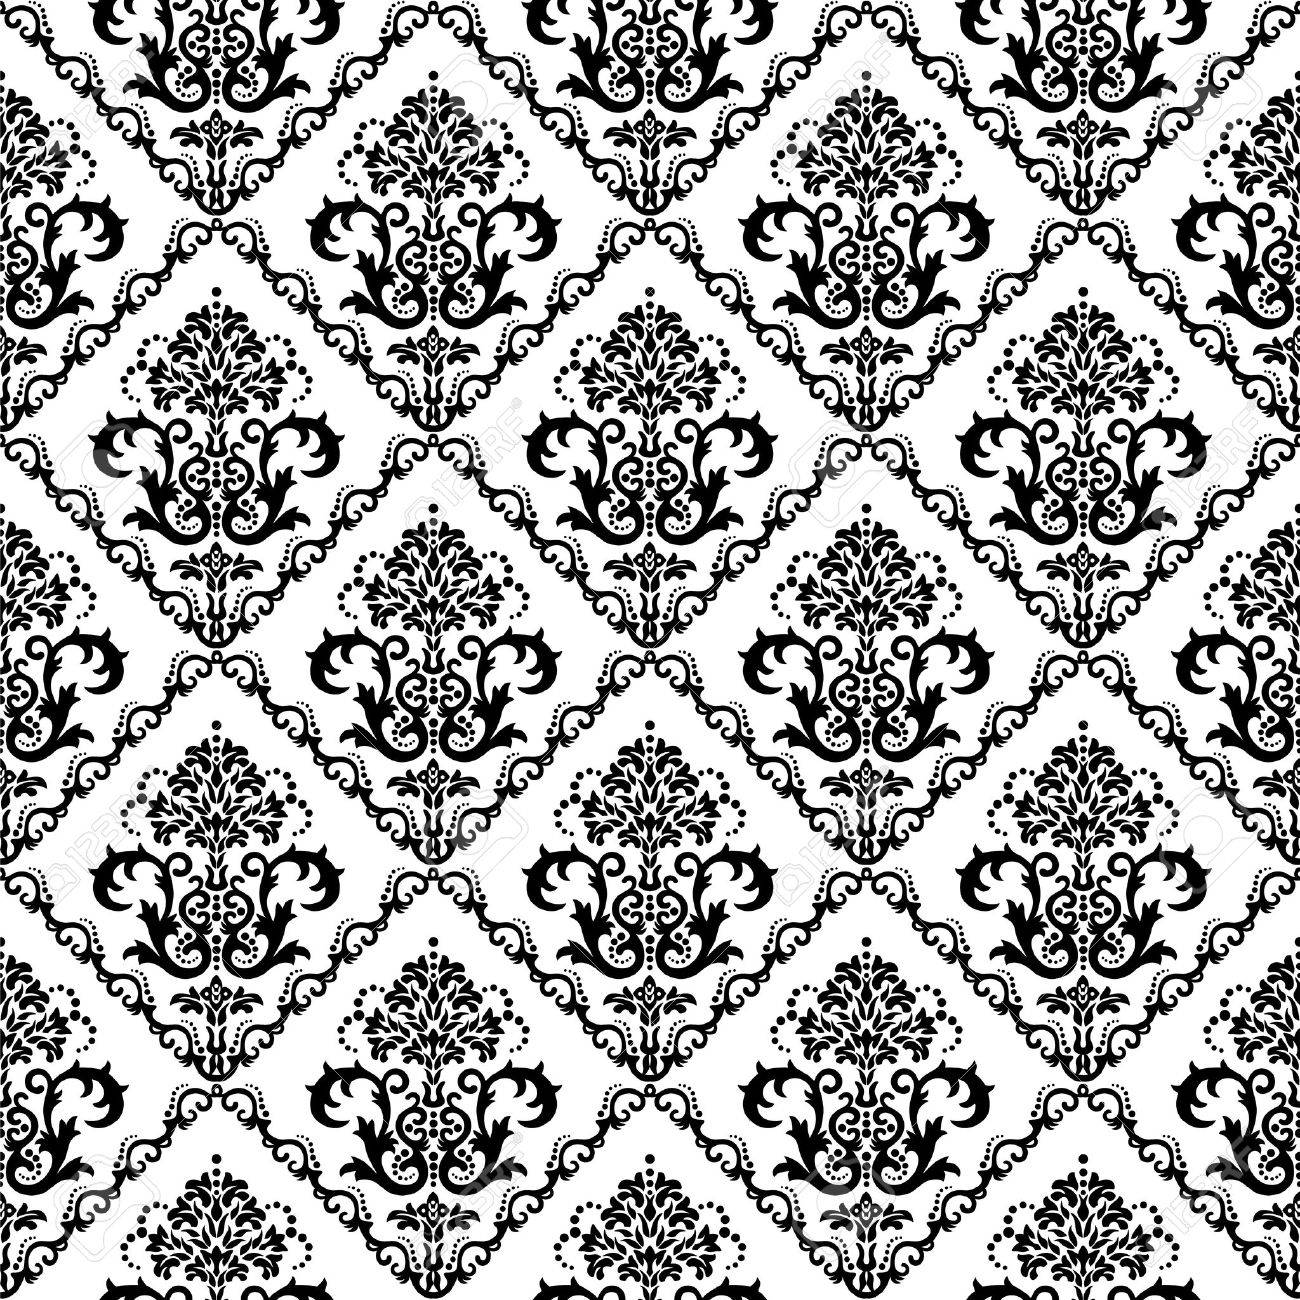 Seamless black & white floral damask wallpaper Stock Vector - 5914802